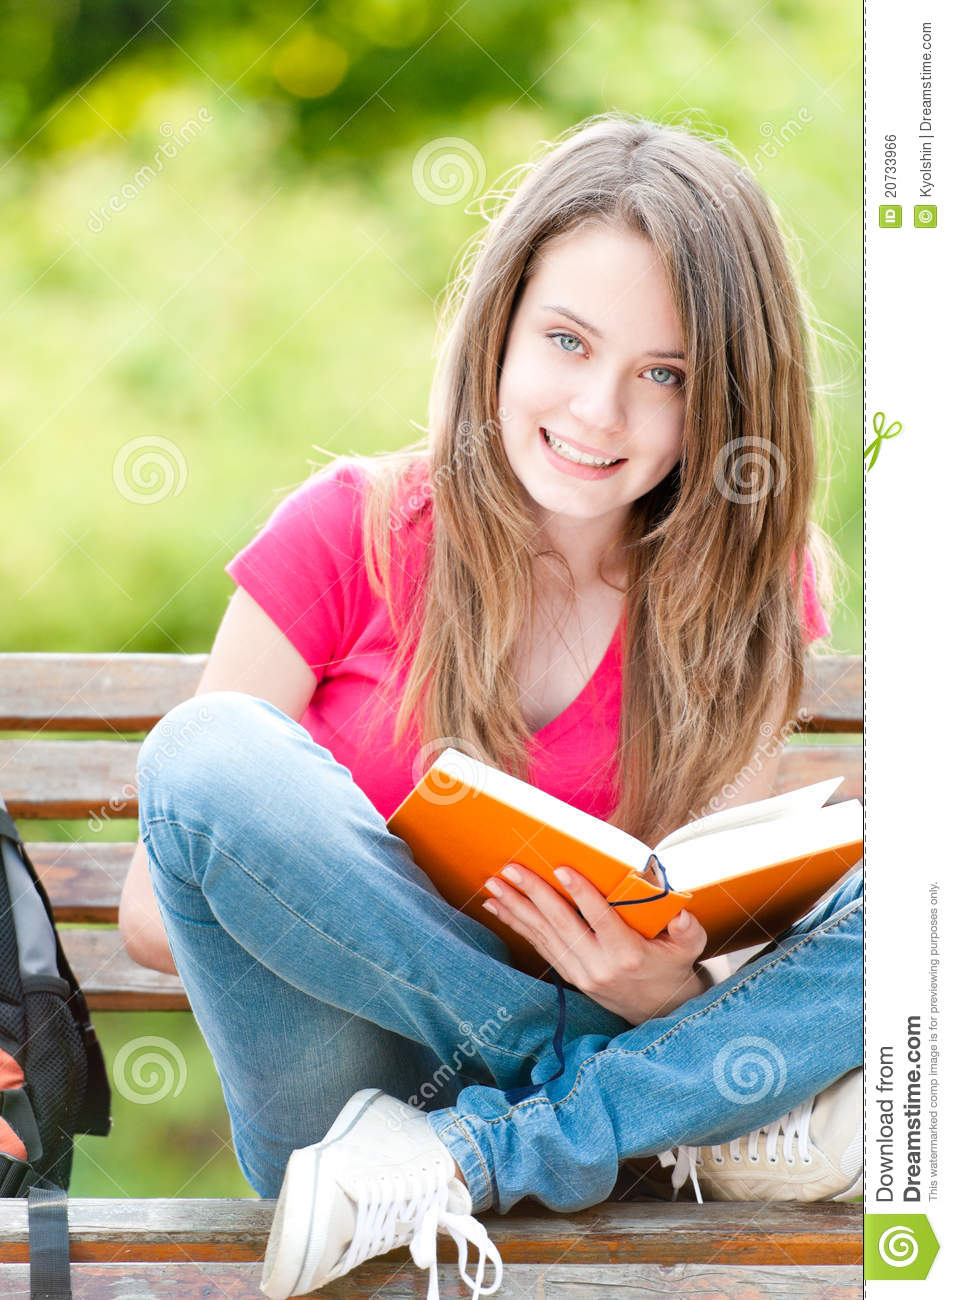 Smart Girl Wallpaper Free Download Happy Student Girl Sitting On Bench With Book Royalty Free